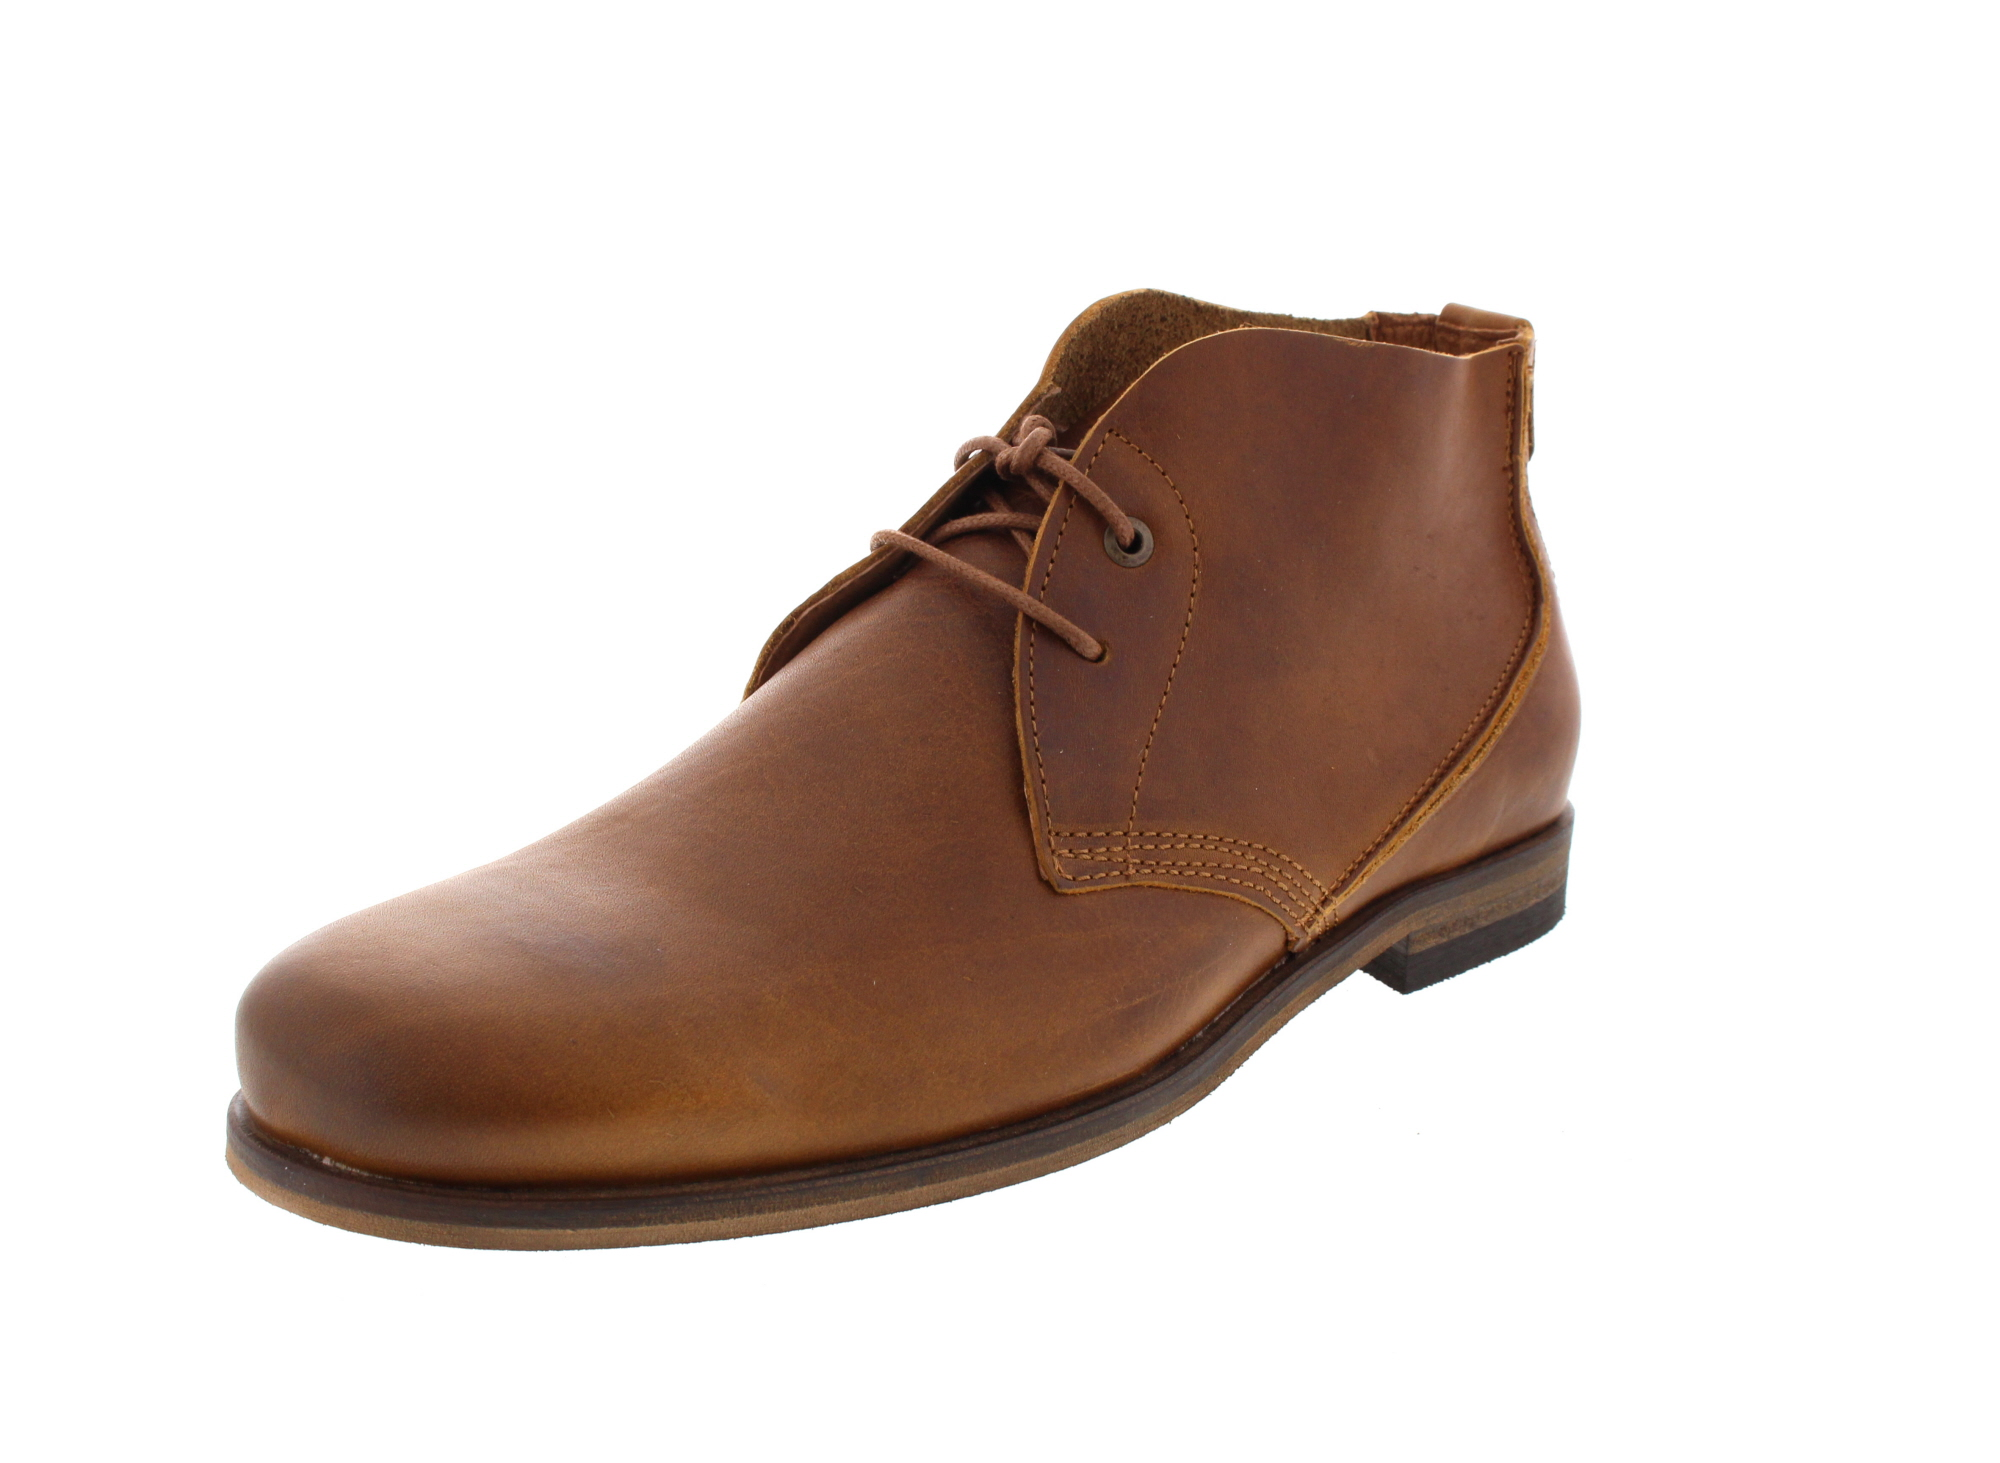 HAGHE by HUB Herrenschuhe - Boots SPURS - cognac_0